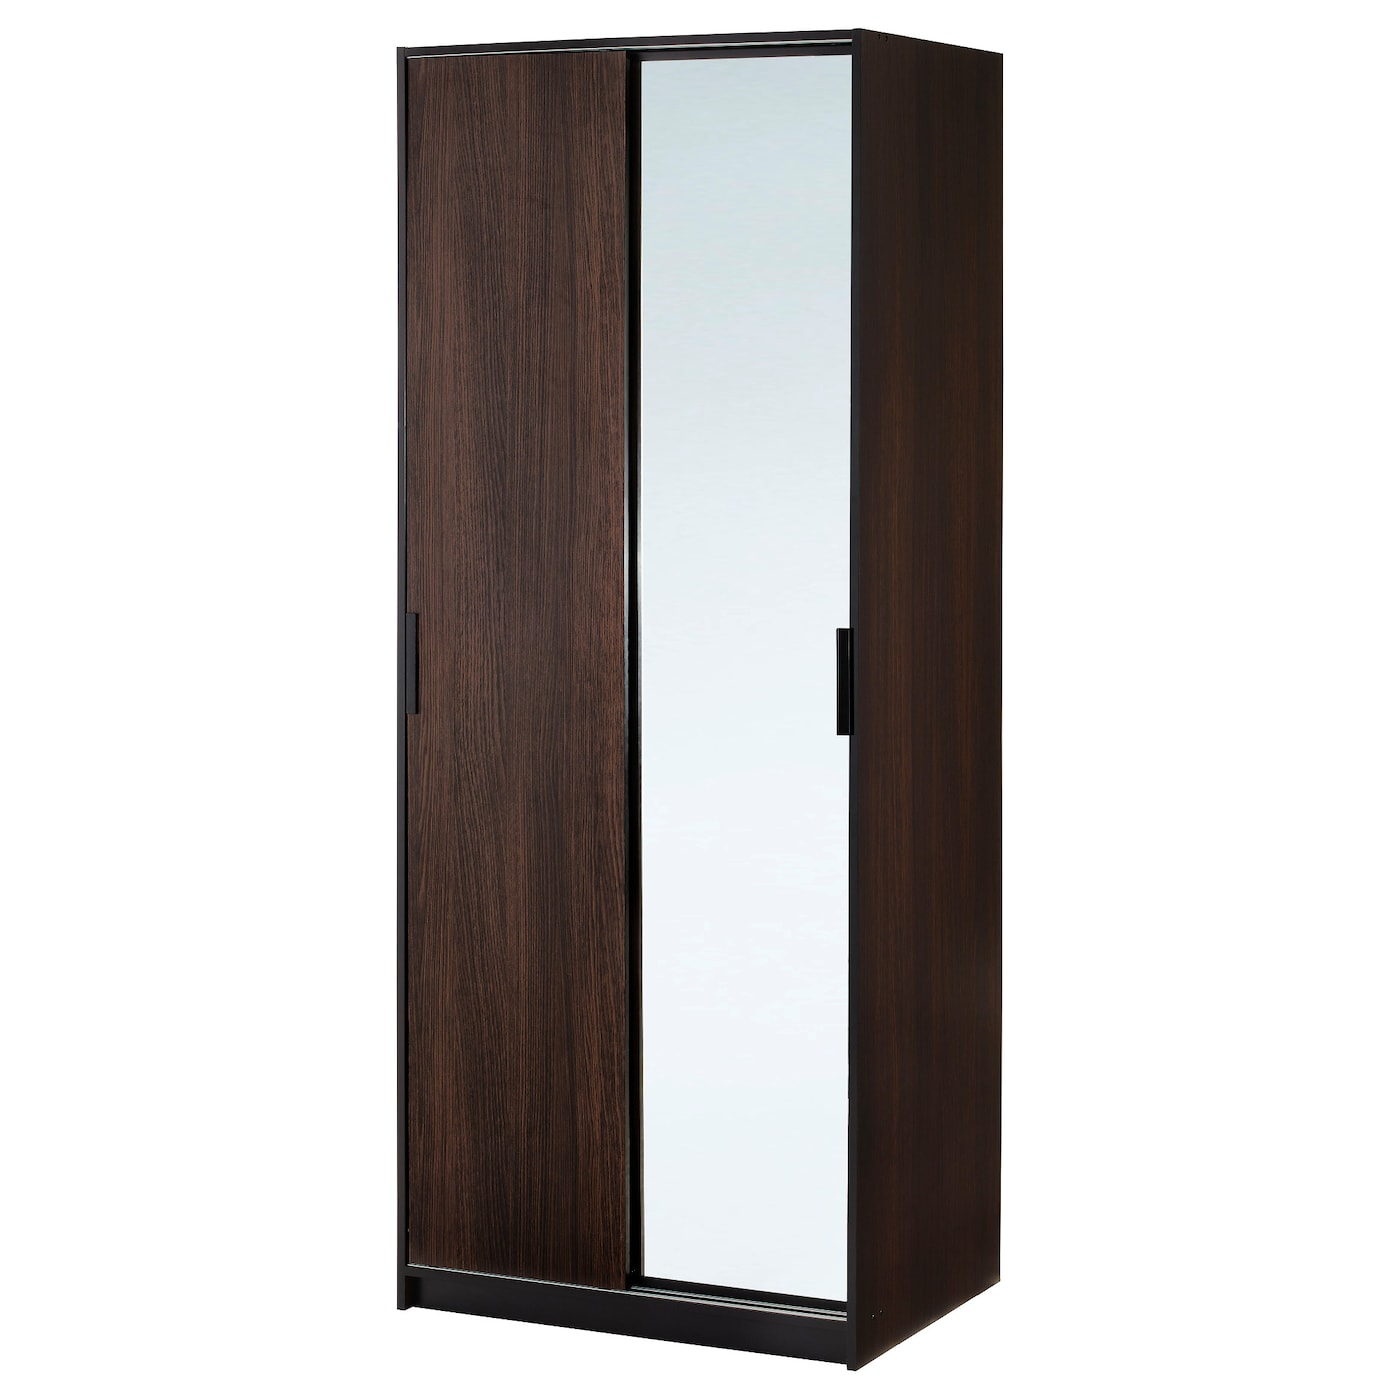 Trysil wardrobe w sliding doors 4 drawers white 118x61x202 for Armoire bois noir